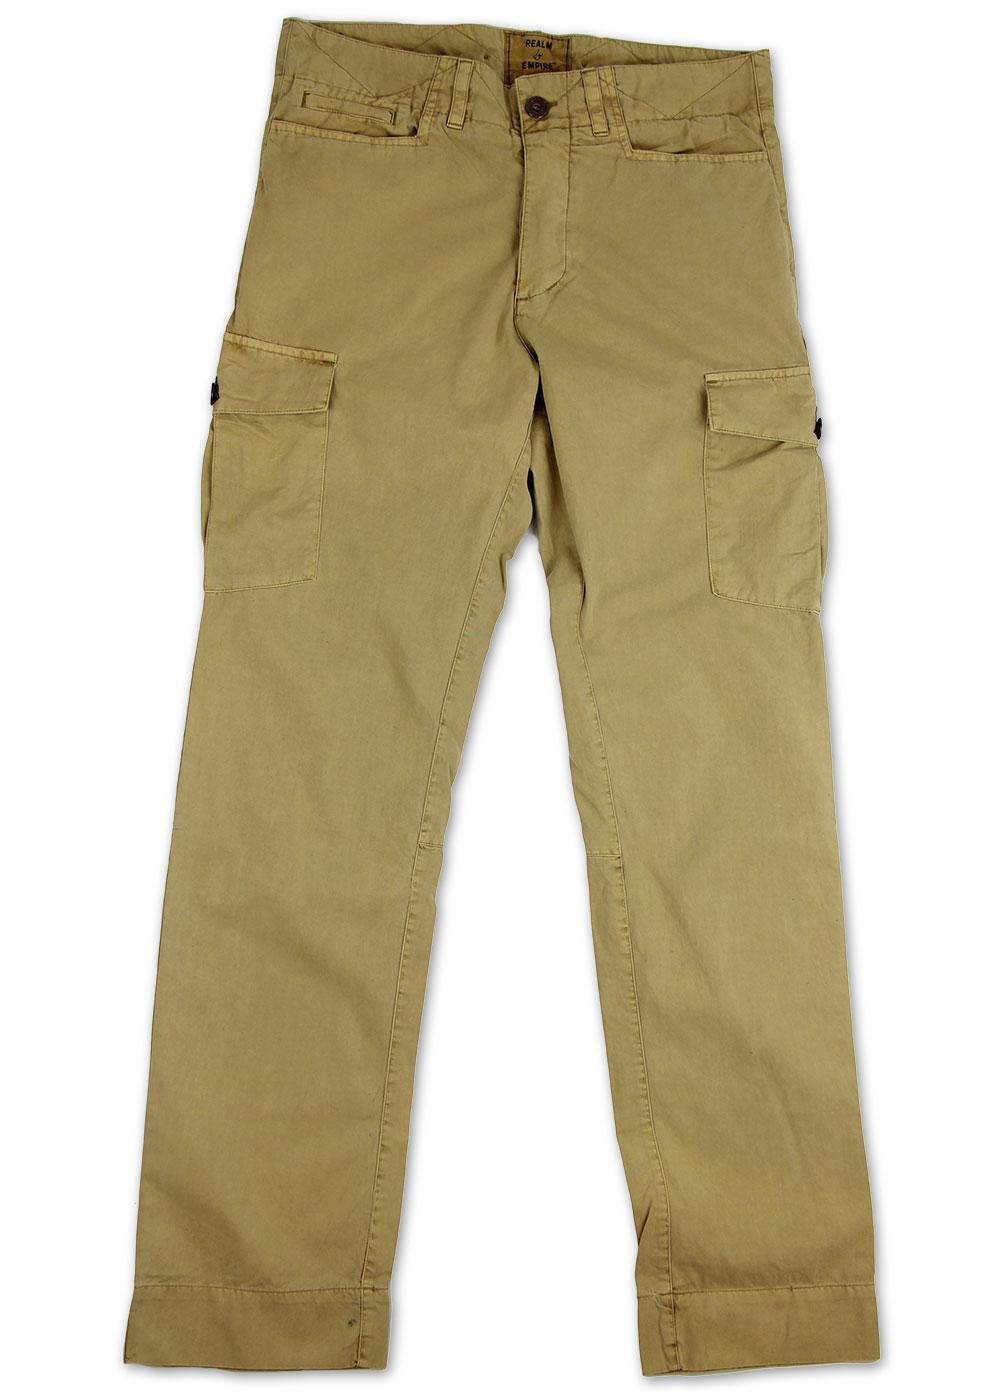 REALM & EMPIRE Retro Cotton Twill Cargo Trousers